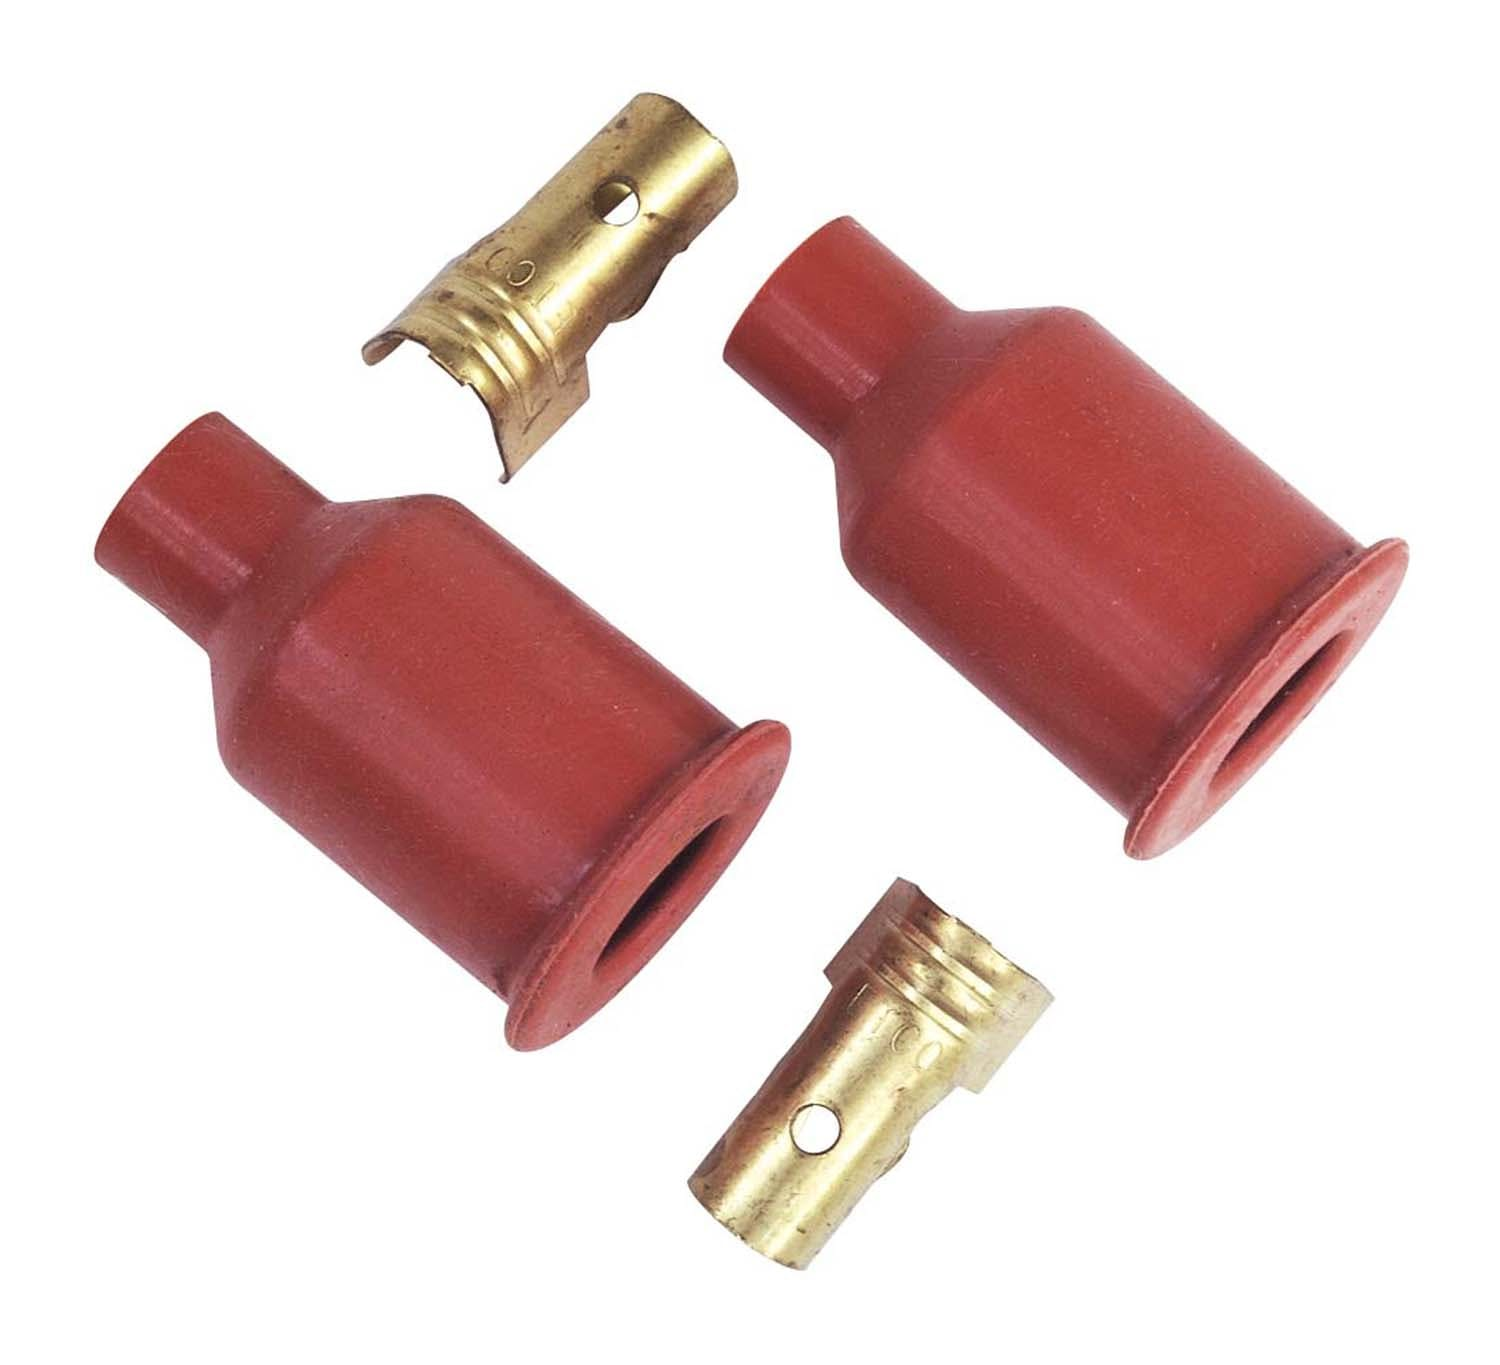 MSD Ignition Set of 2 MSD 3325 Spark Plug Wire Boot and Terminal,